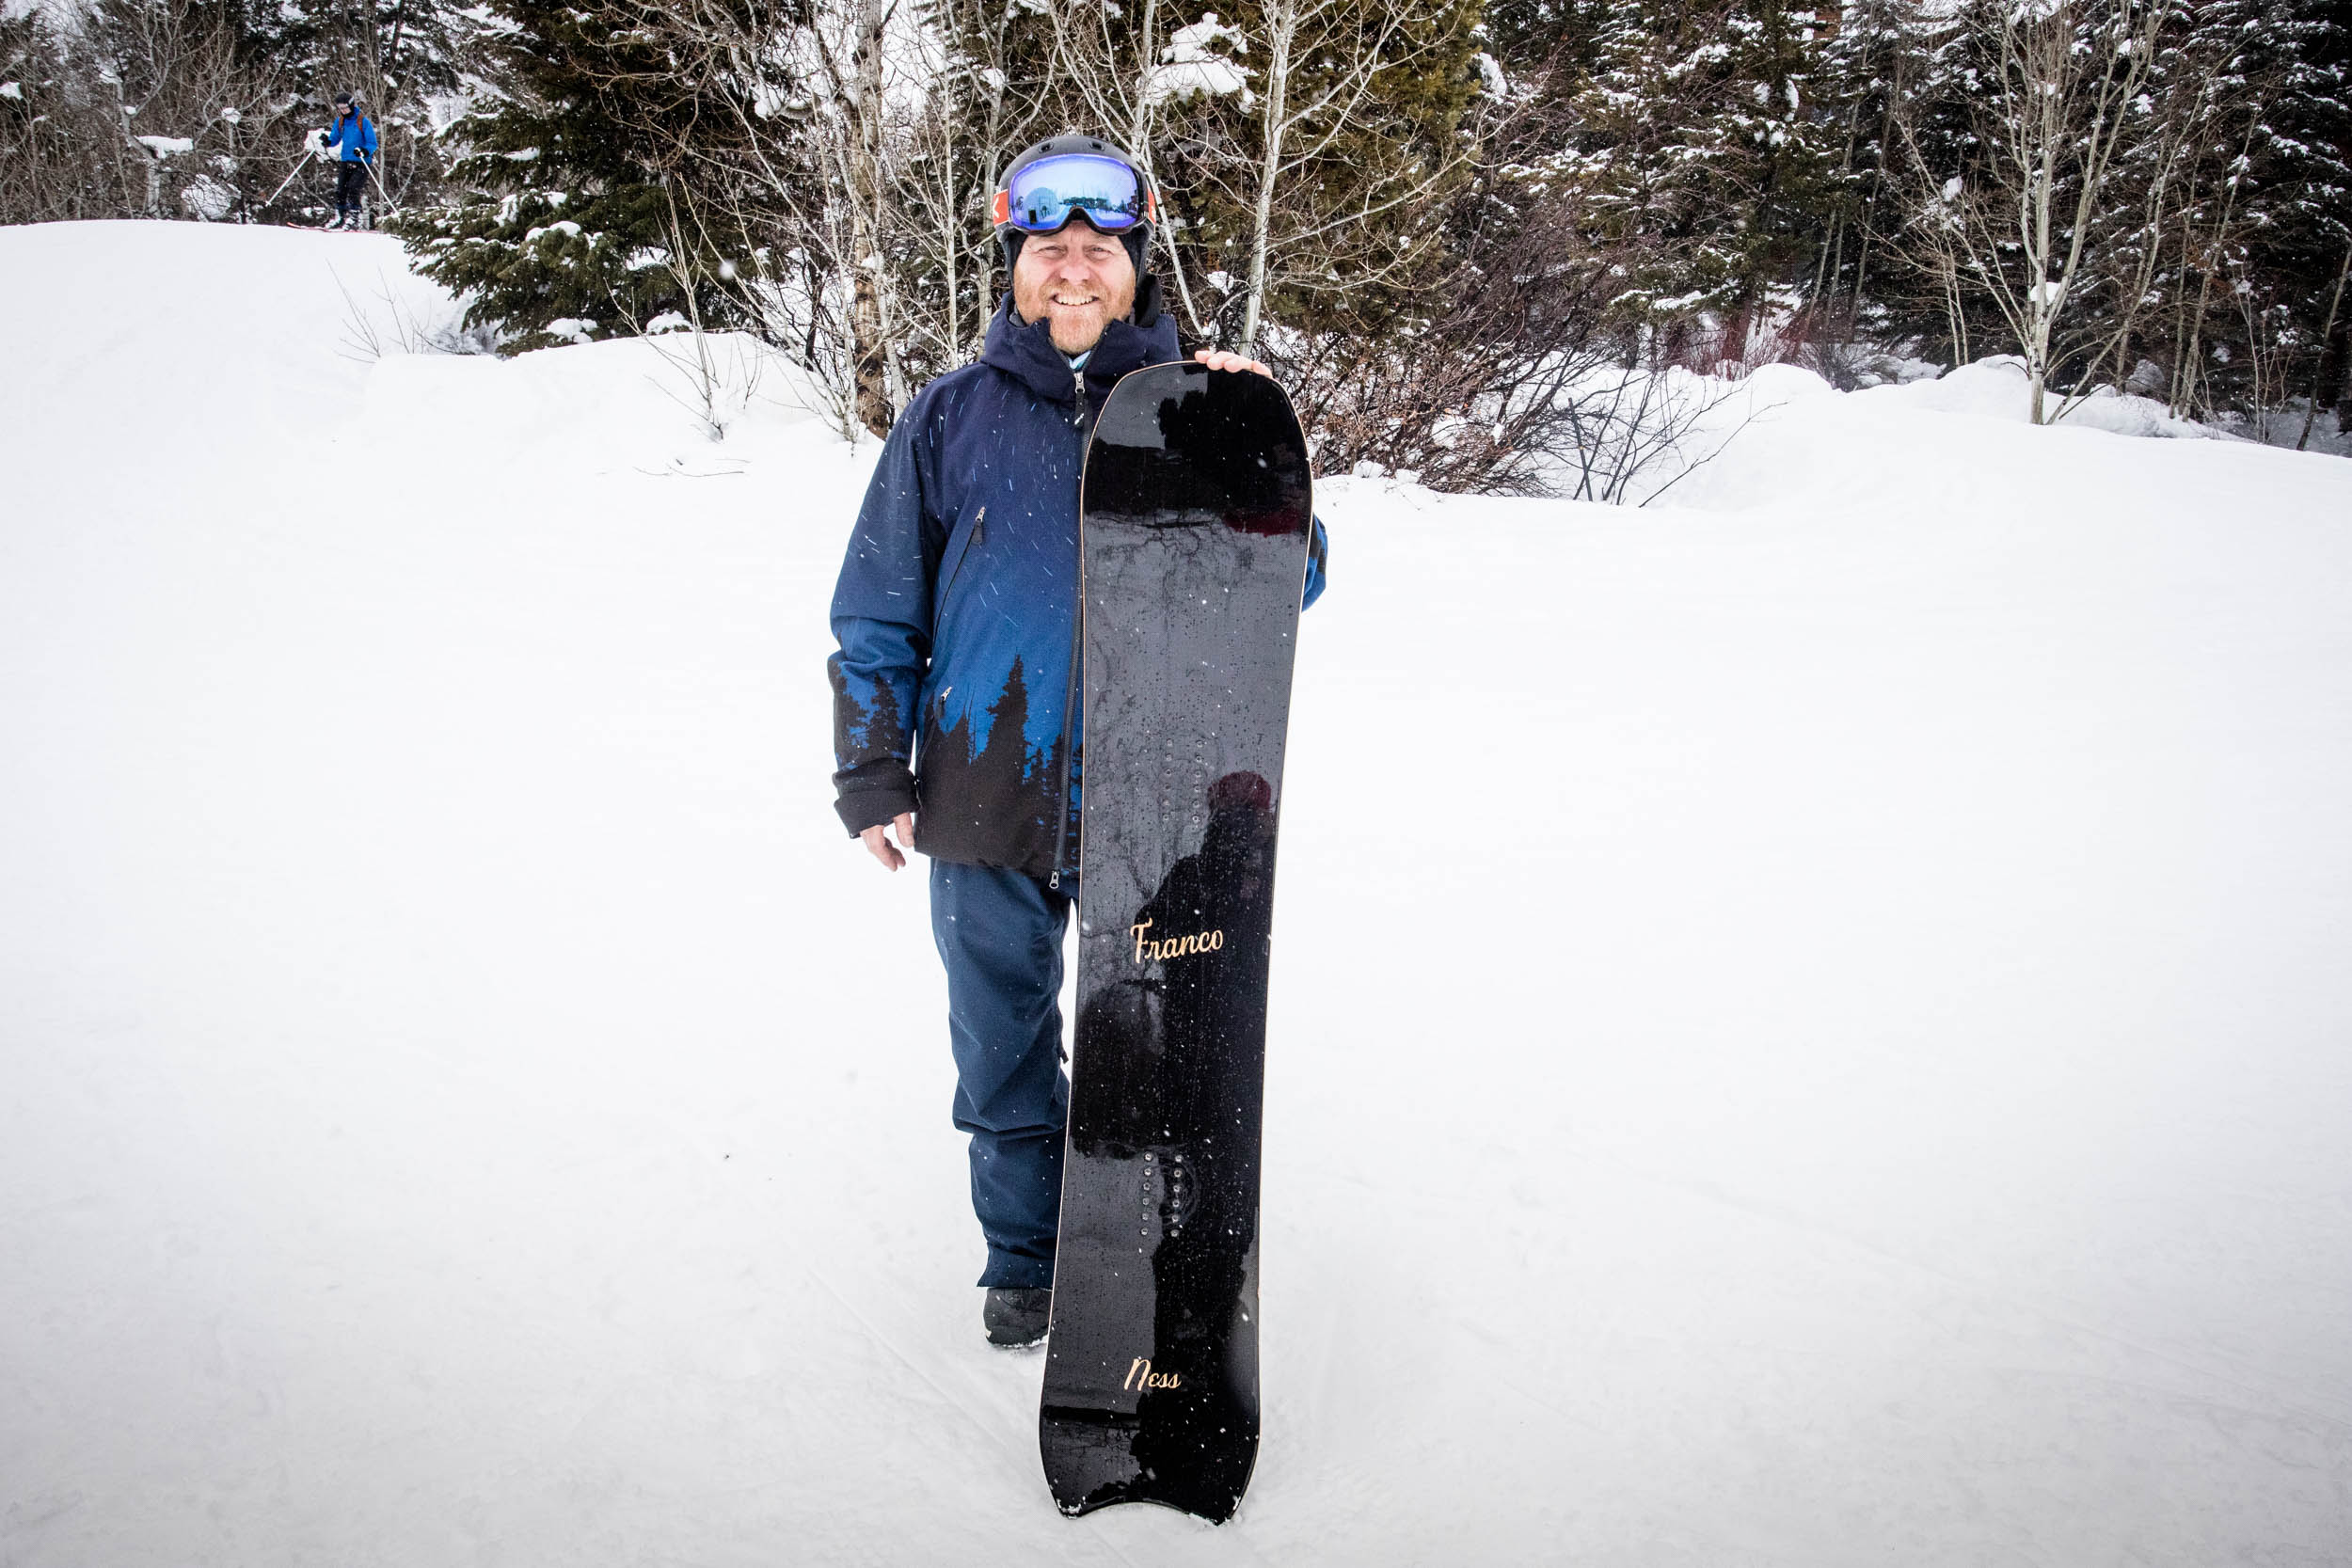 Custom snowboard builder and Franco Snowshapes founder, Mikey Franco, holds The Ness.. Click to view image.